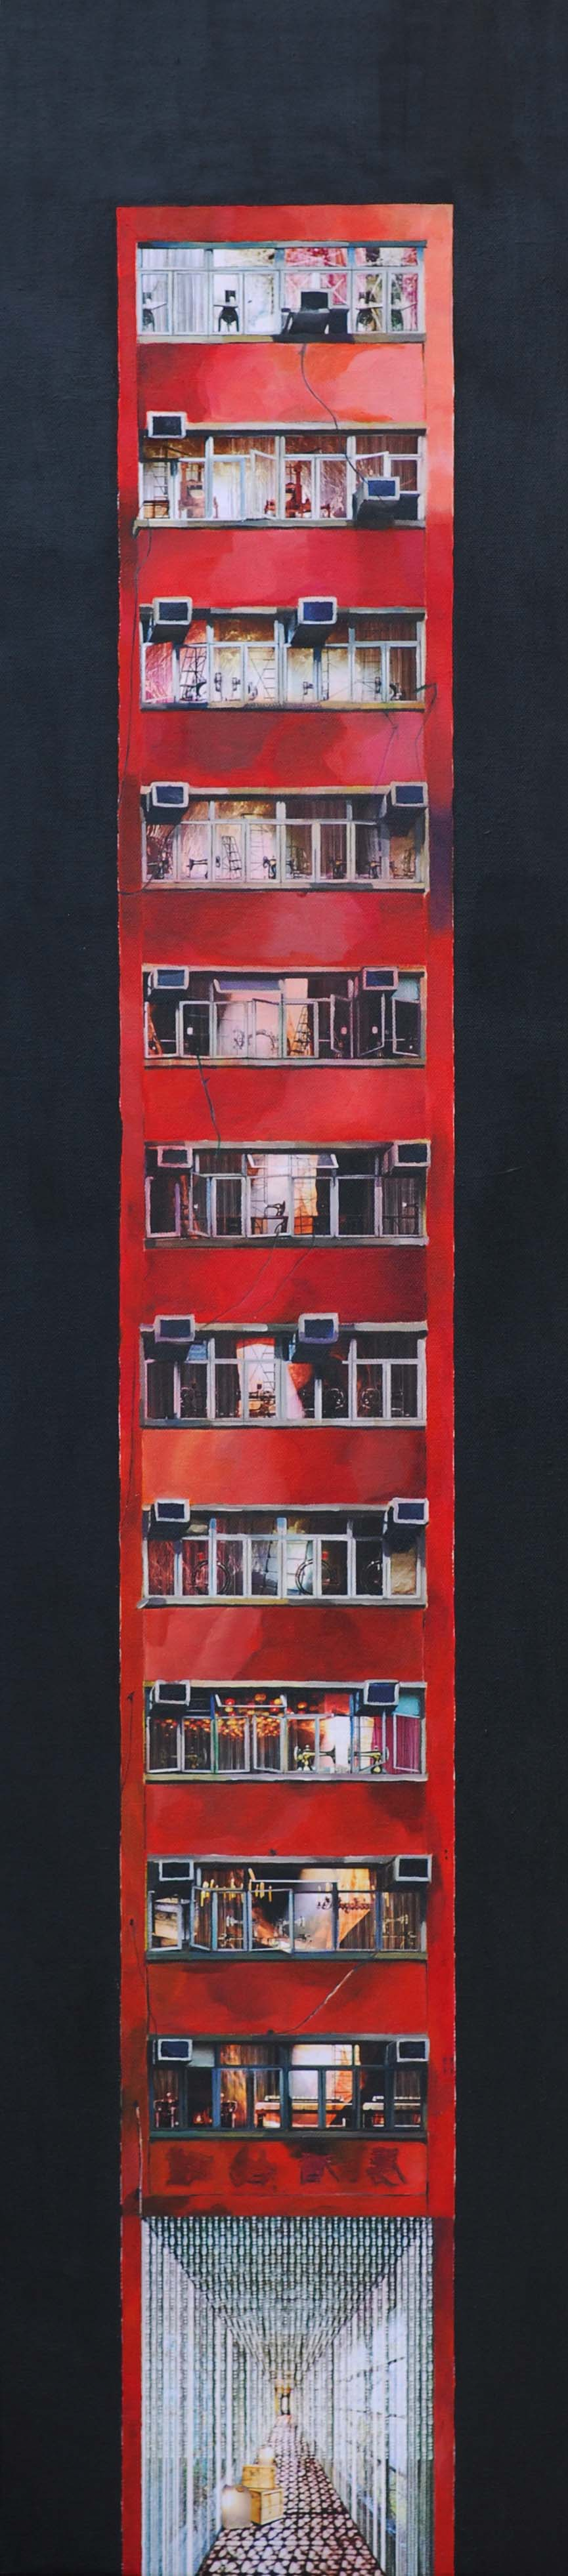 Crystal Sewing Factory - 2014 (SOLD)